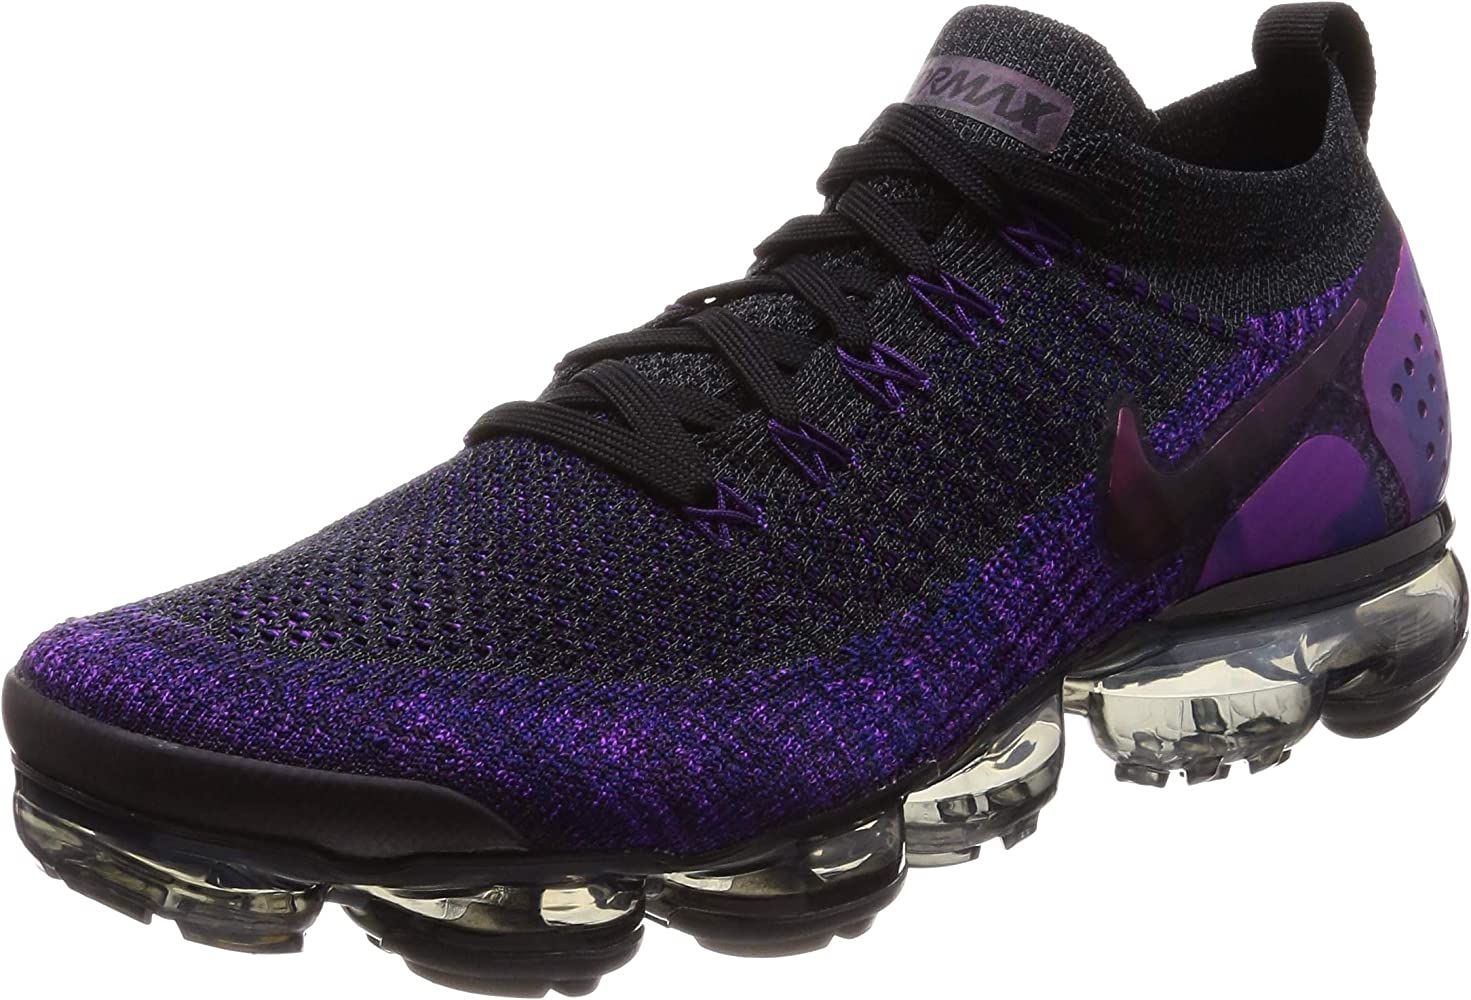 size 40 f0146 6a100 Air Vapormax Flyknit 2 Mens 942842-013 Size 10